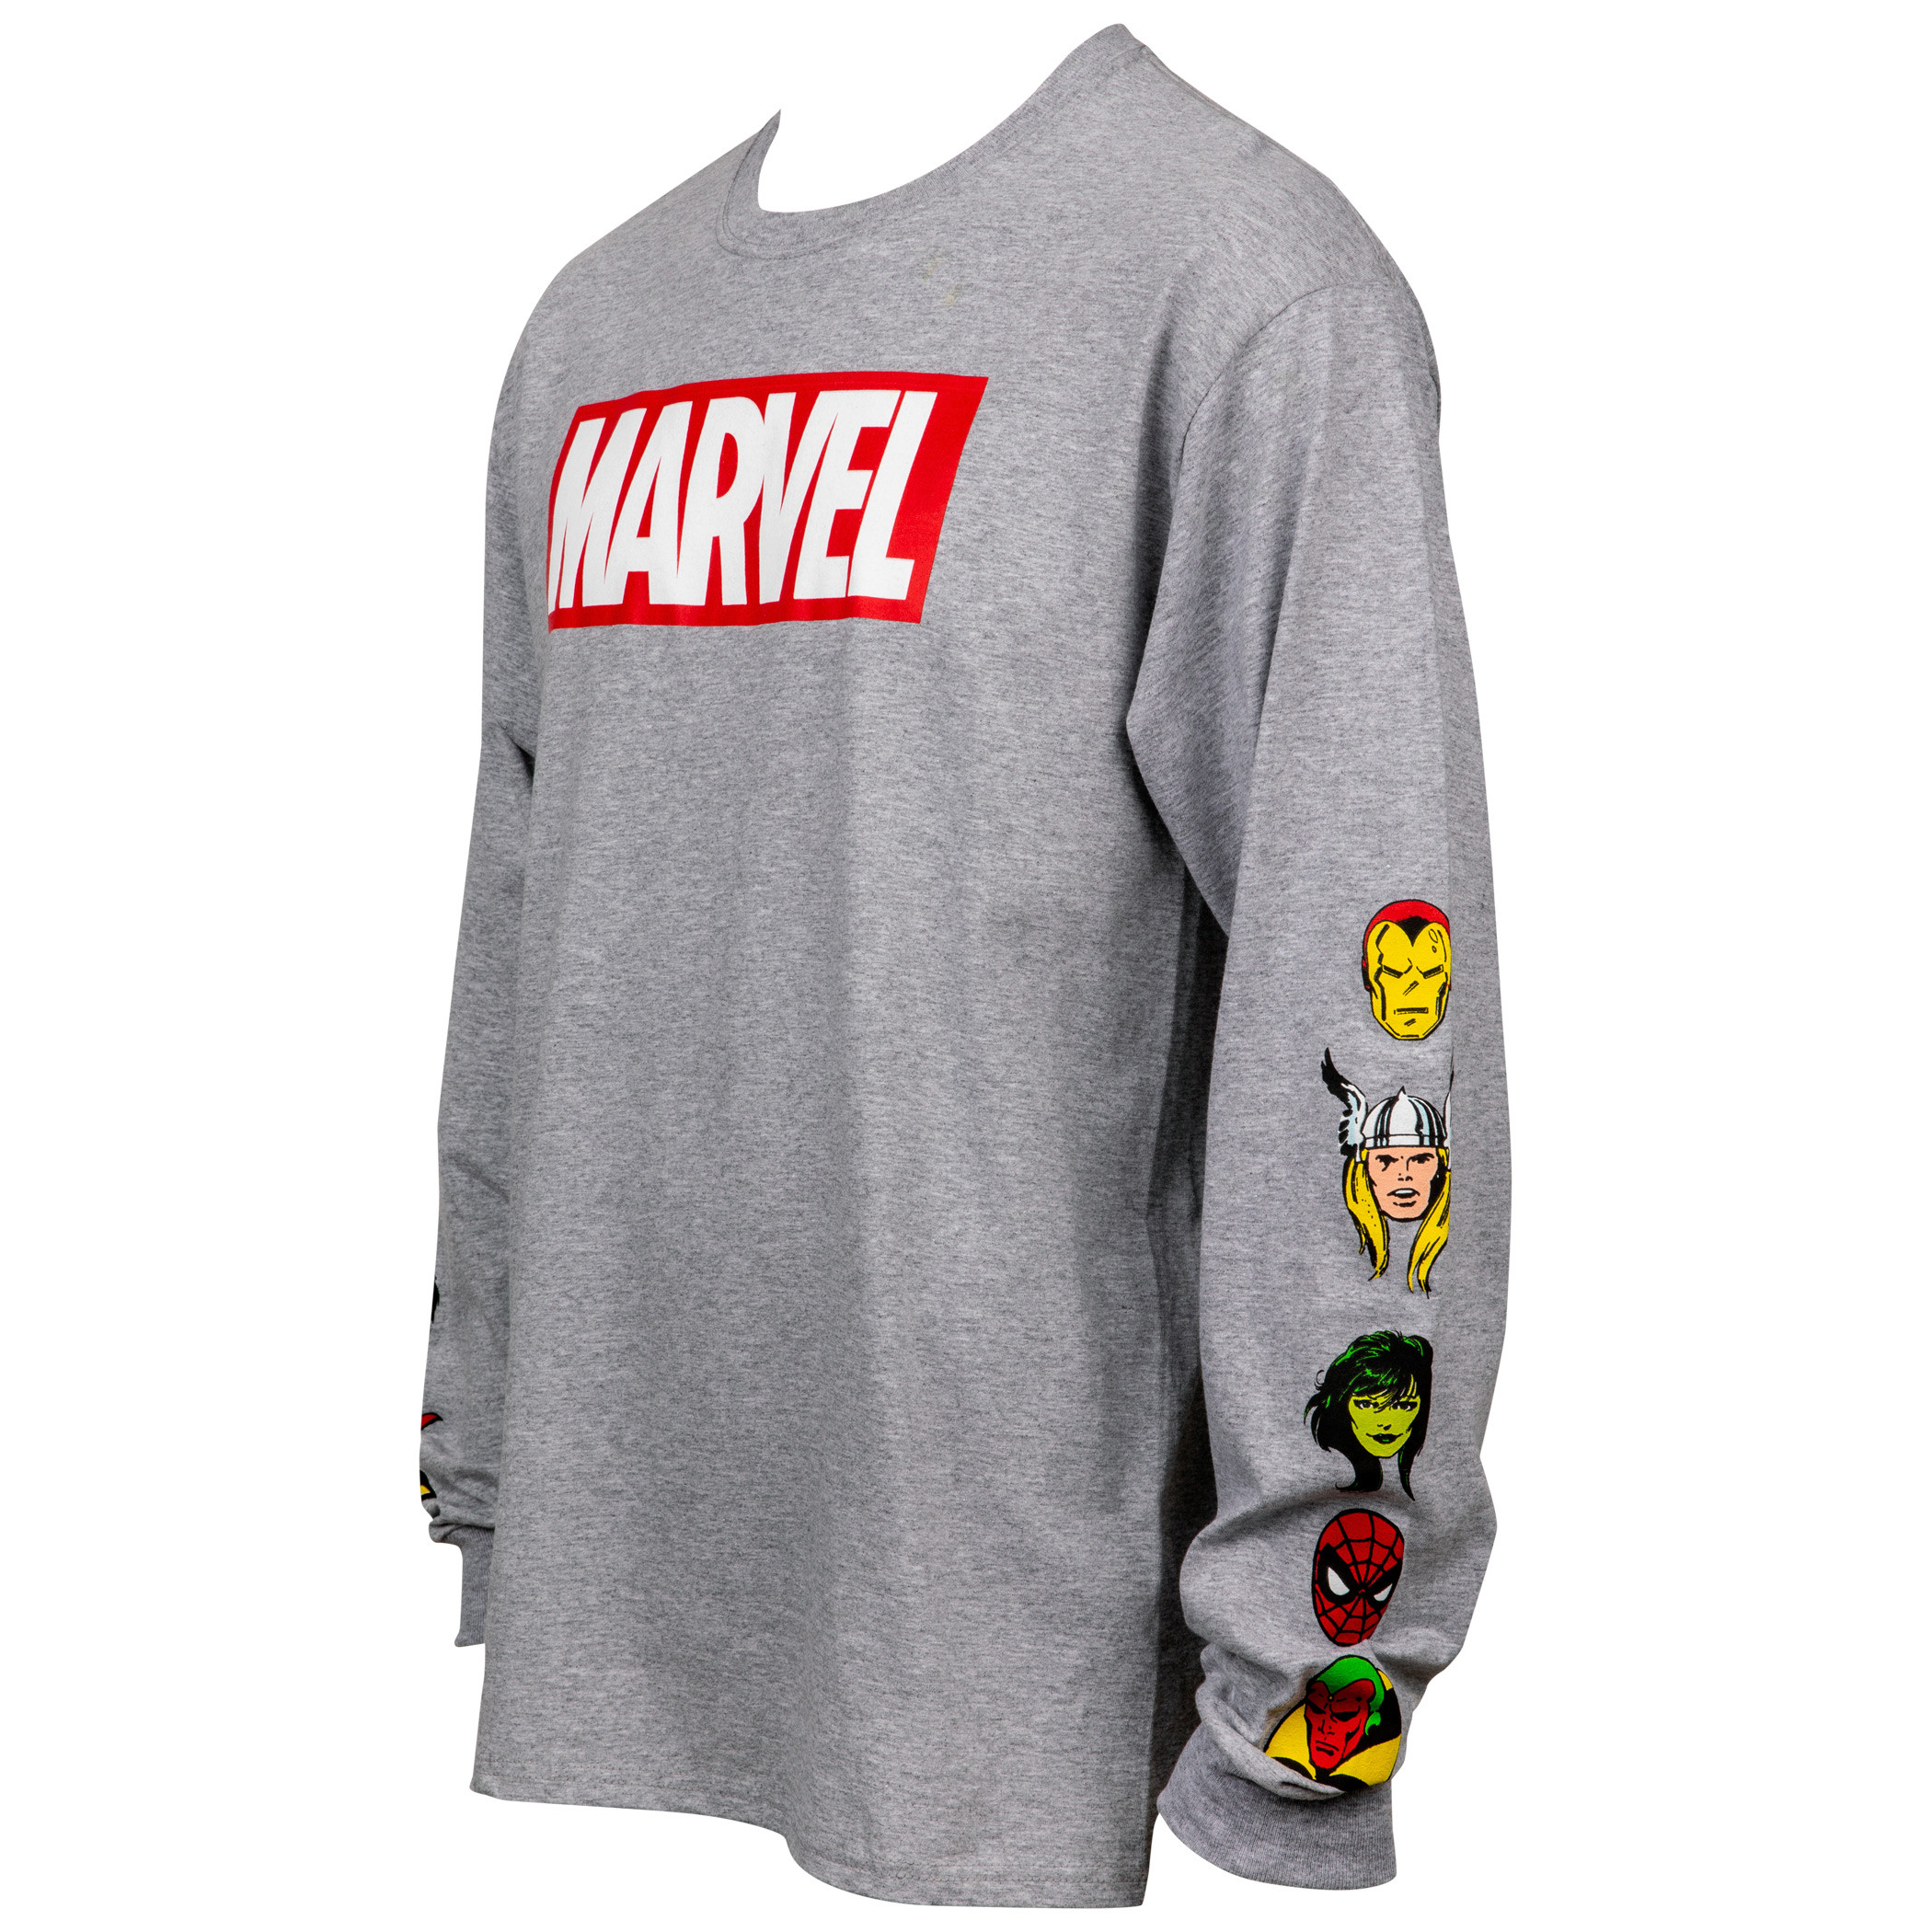 Marvel Text Logo with Character Heads Sleeve Print Long Sleeve Shirt